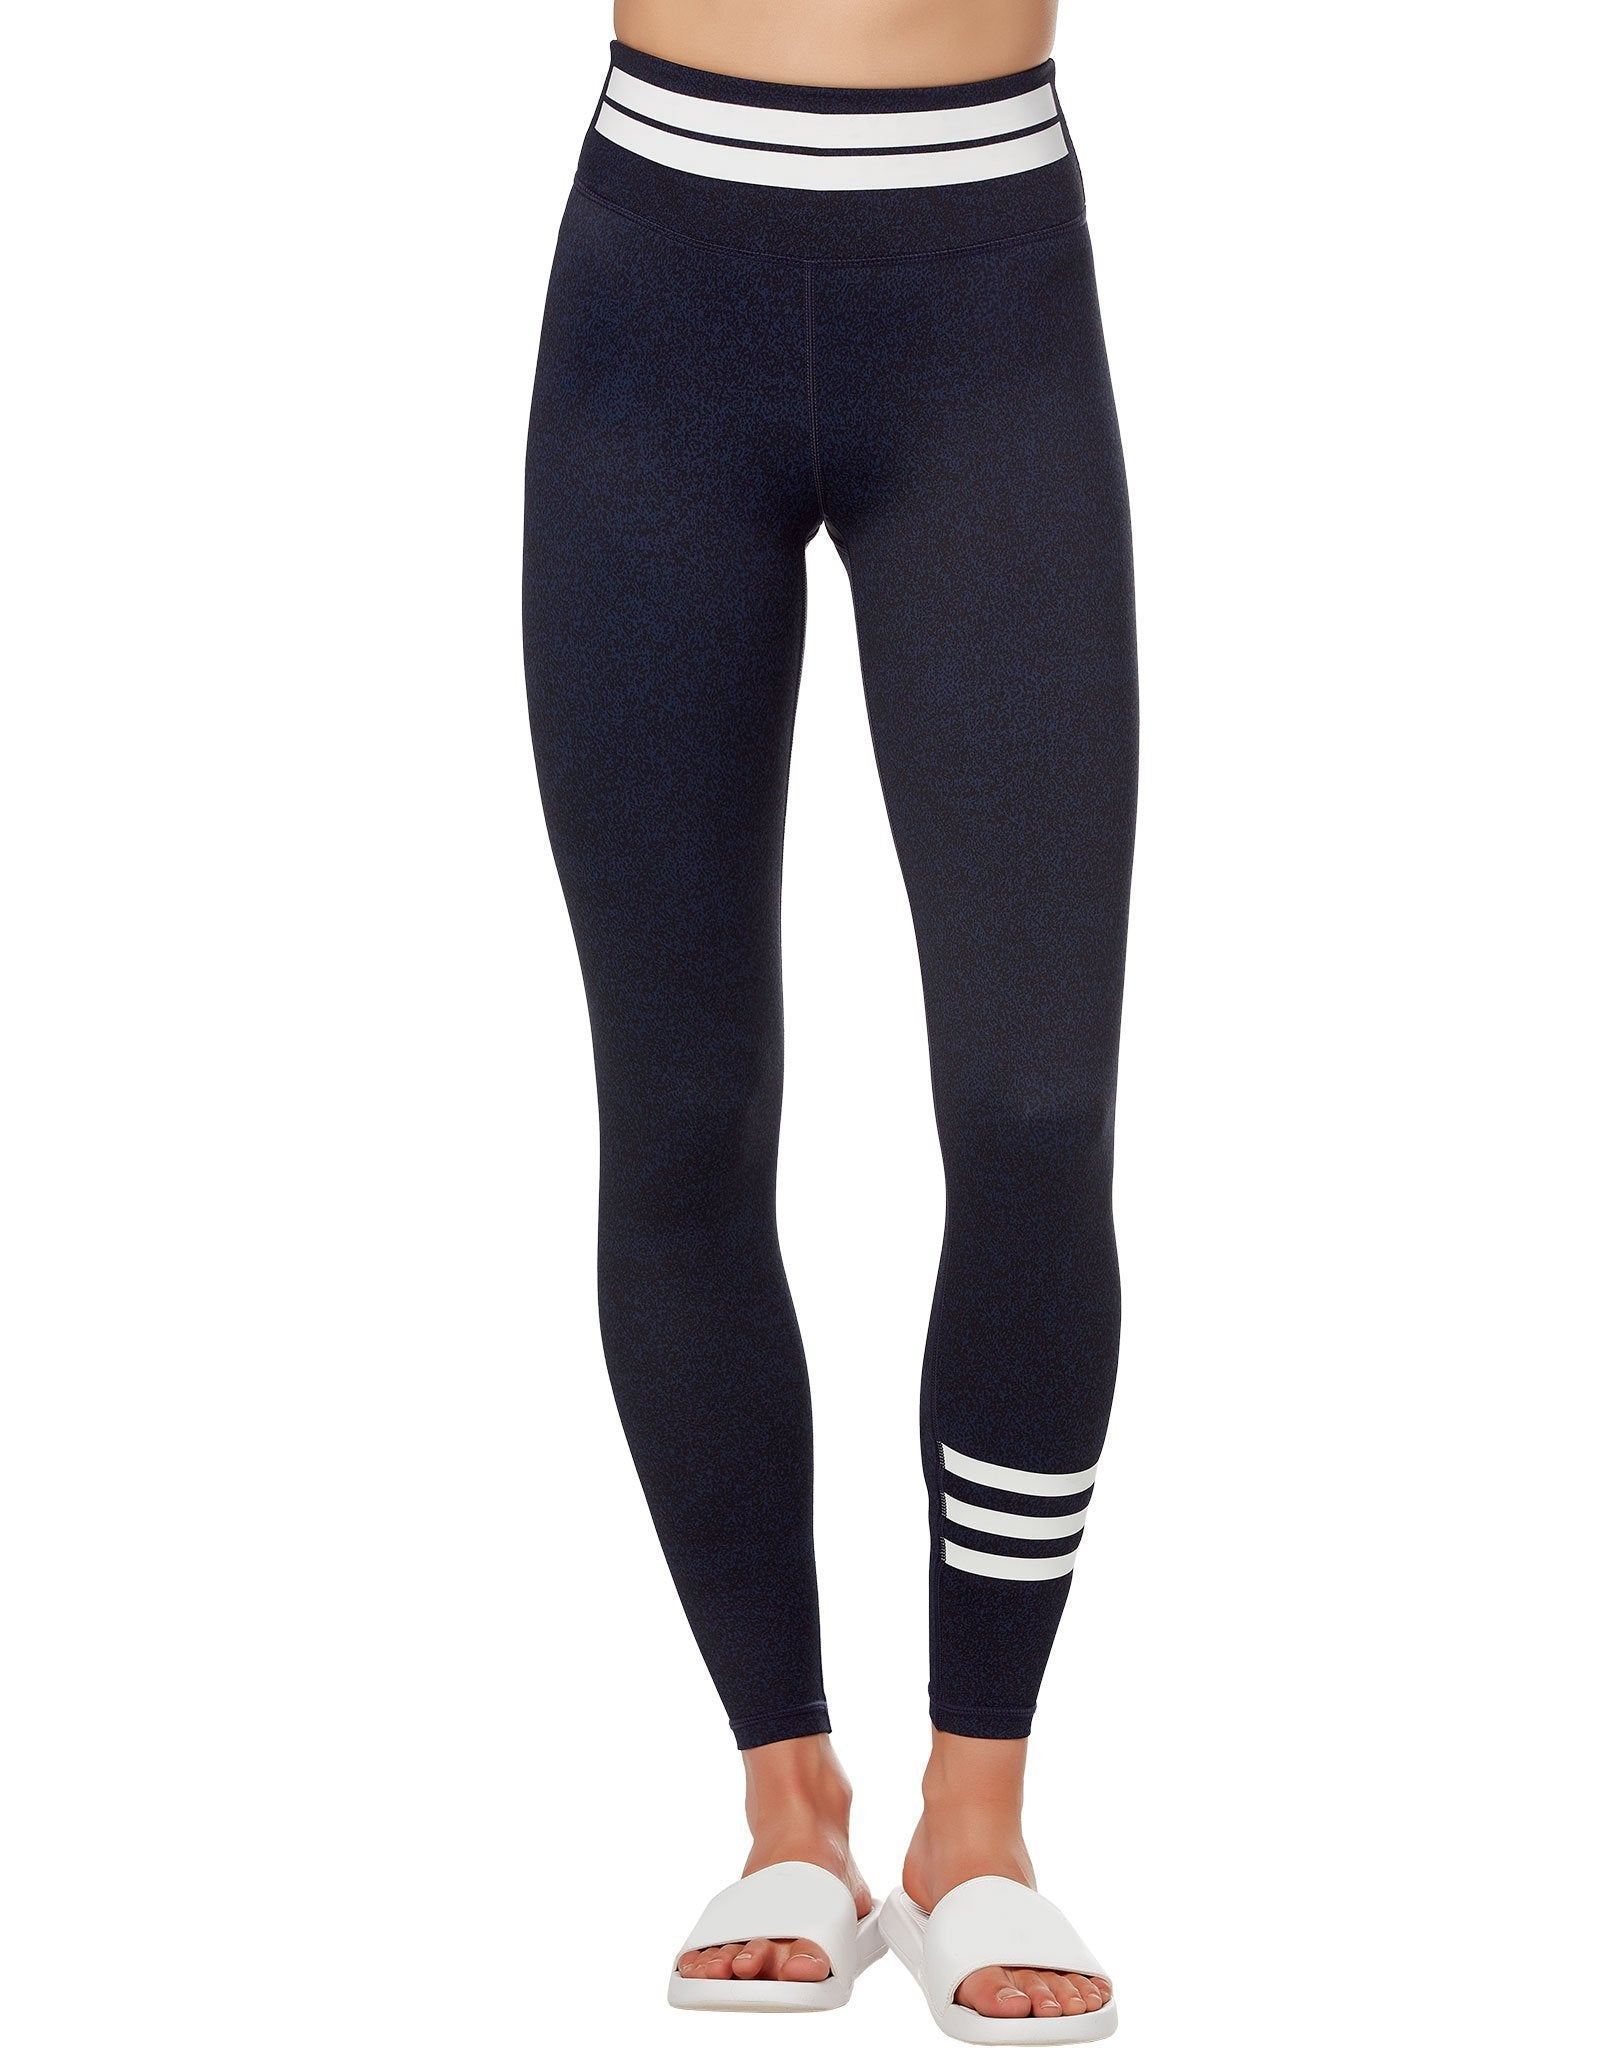 c12a677020ef6 Activewear Leggings | Quality, Comfort & Style | Get KITTED